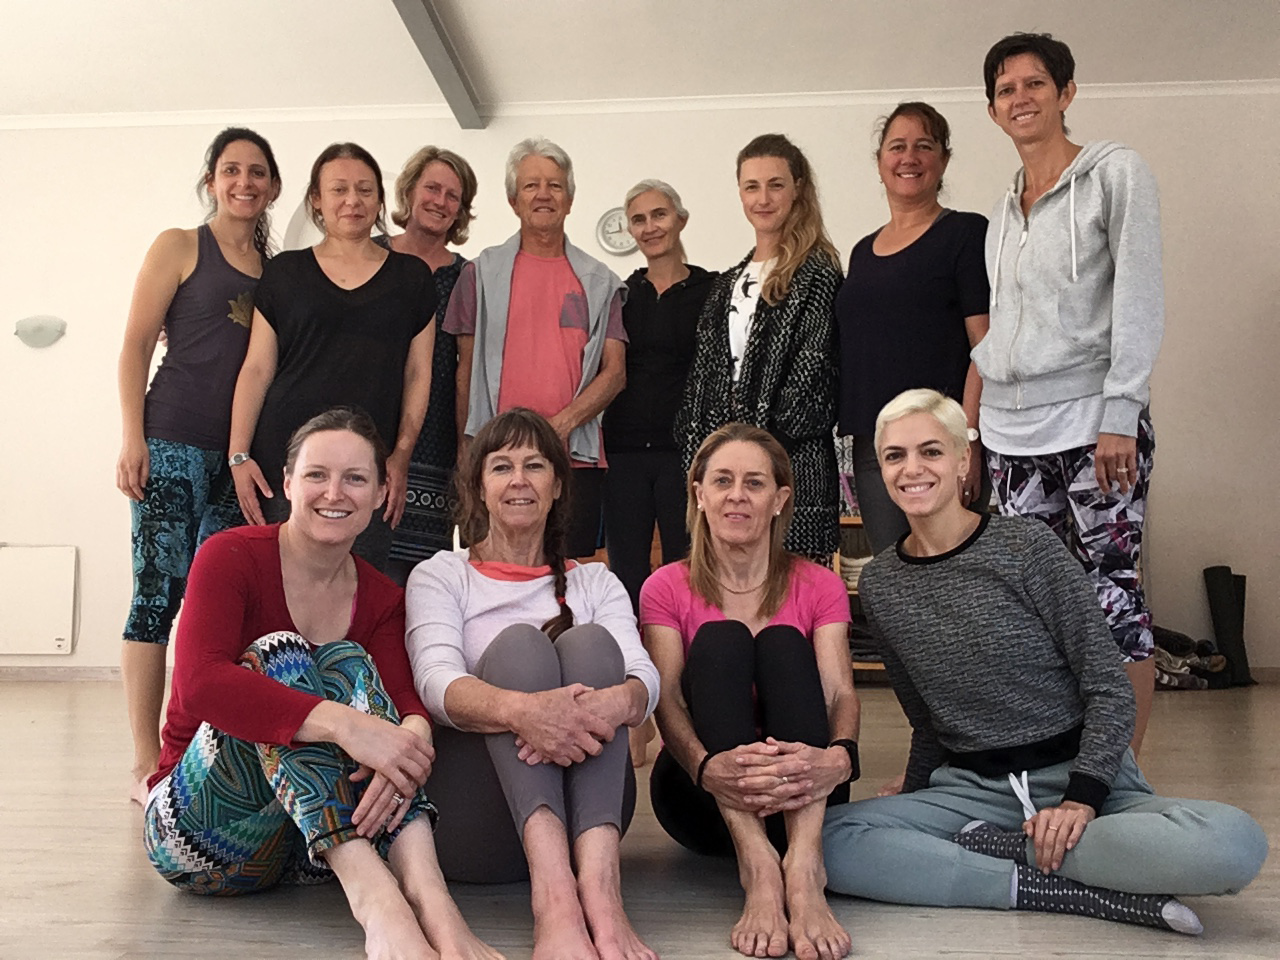 WORKSHOP Follow up – Tips for your yoga home practice